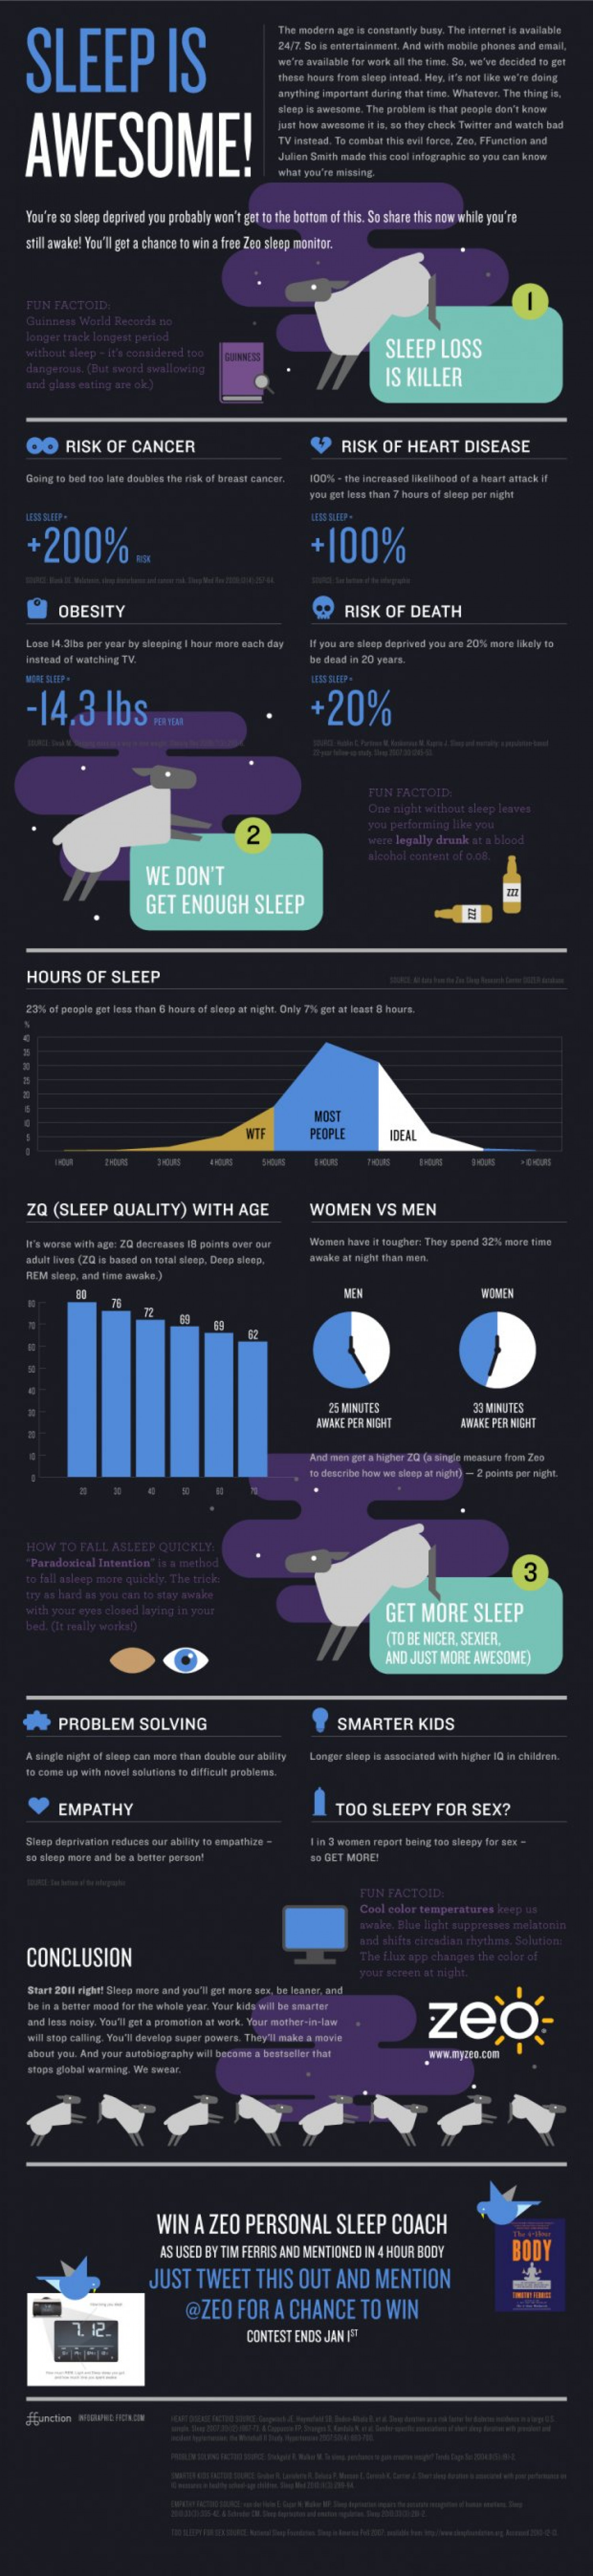 Sleep is Awesome! Infographic